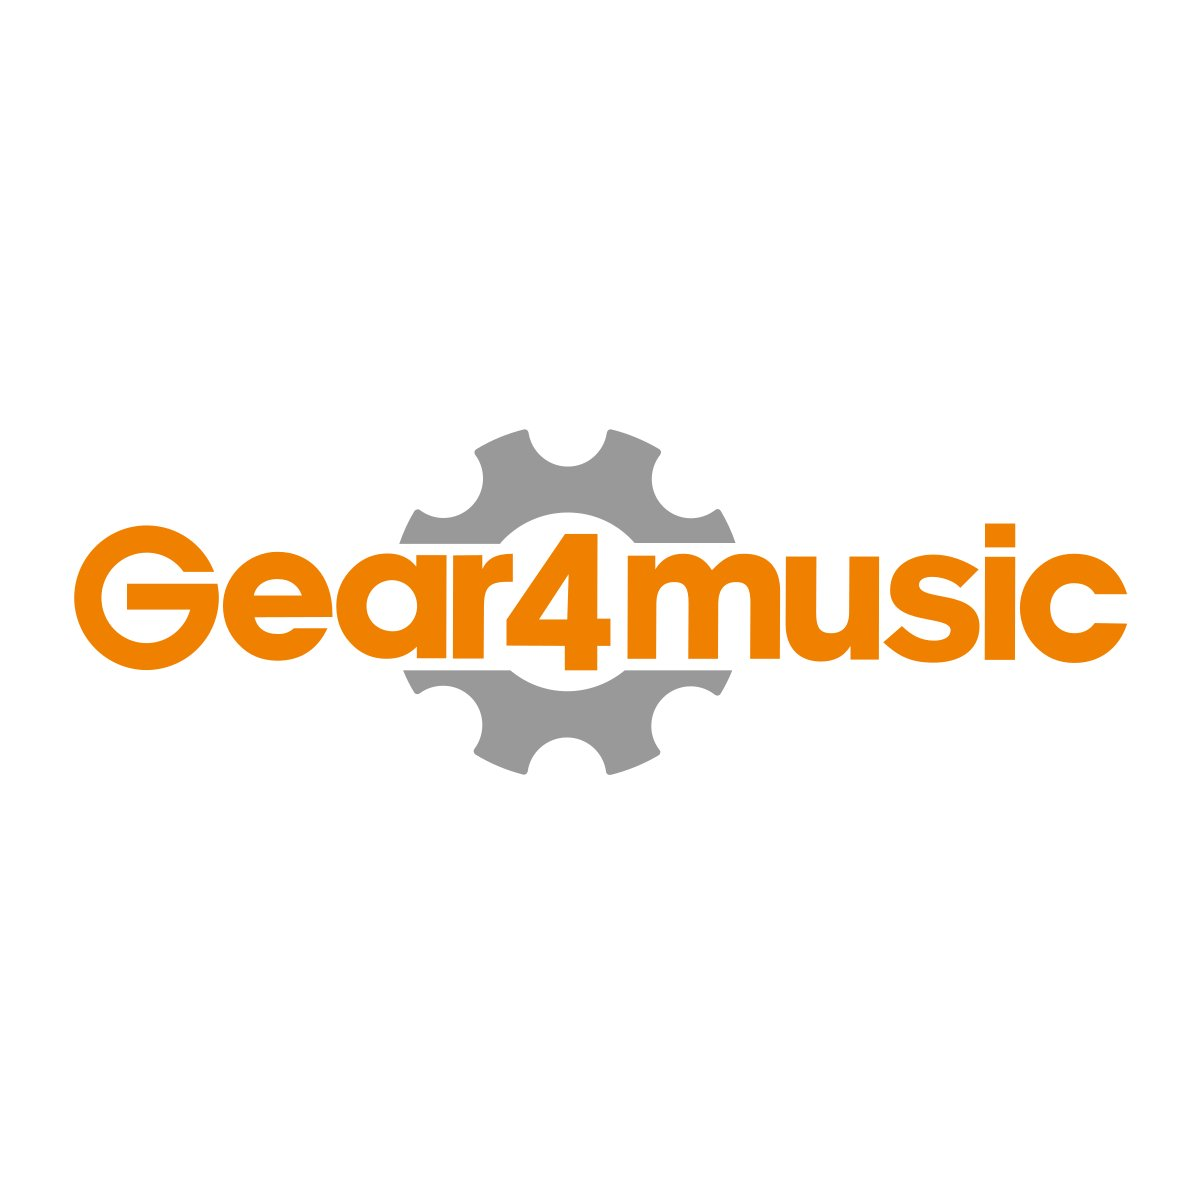 Student French Horn by Gear4music, Gold